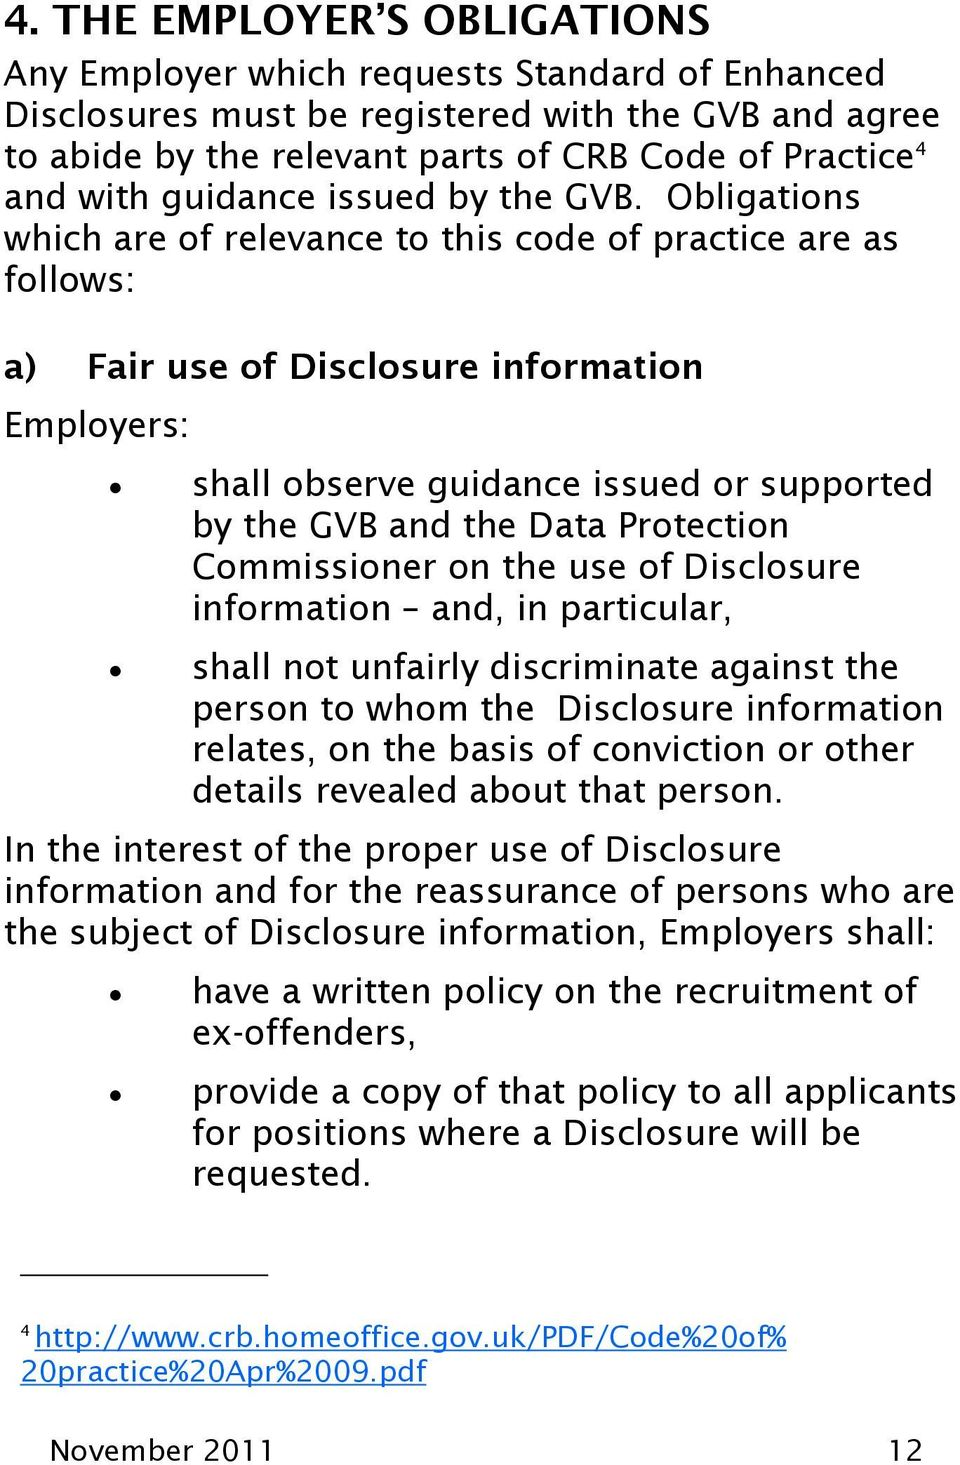 Obligations which are of relevance to this code of practice are as follows: a) Fair use of Disclosure information Employers: shall observe guidance issued or supported by the GVB and the Data